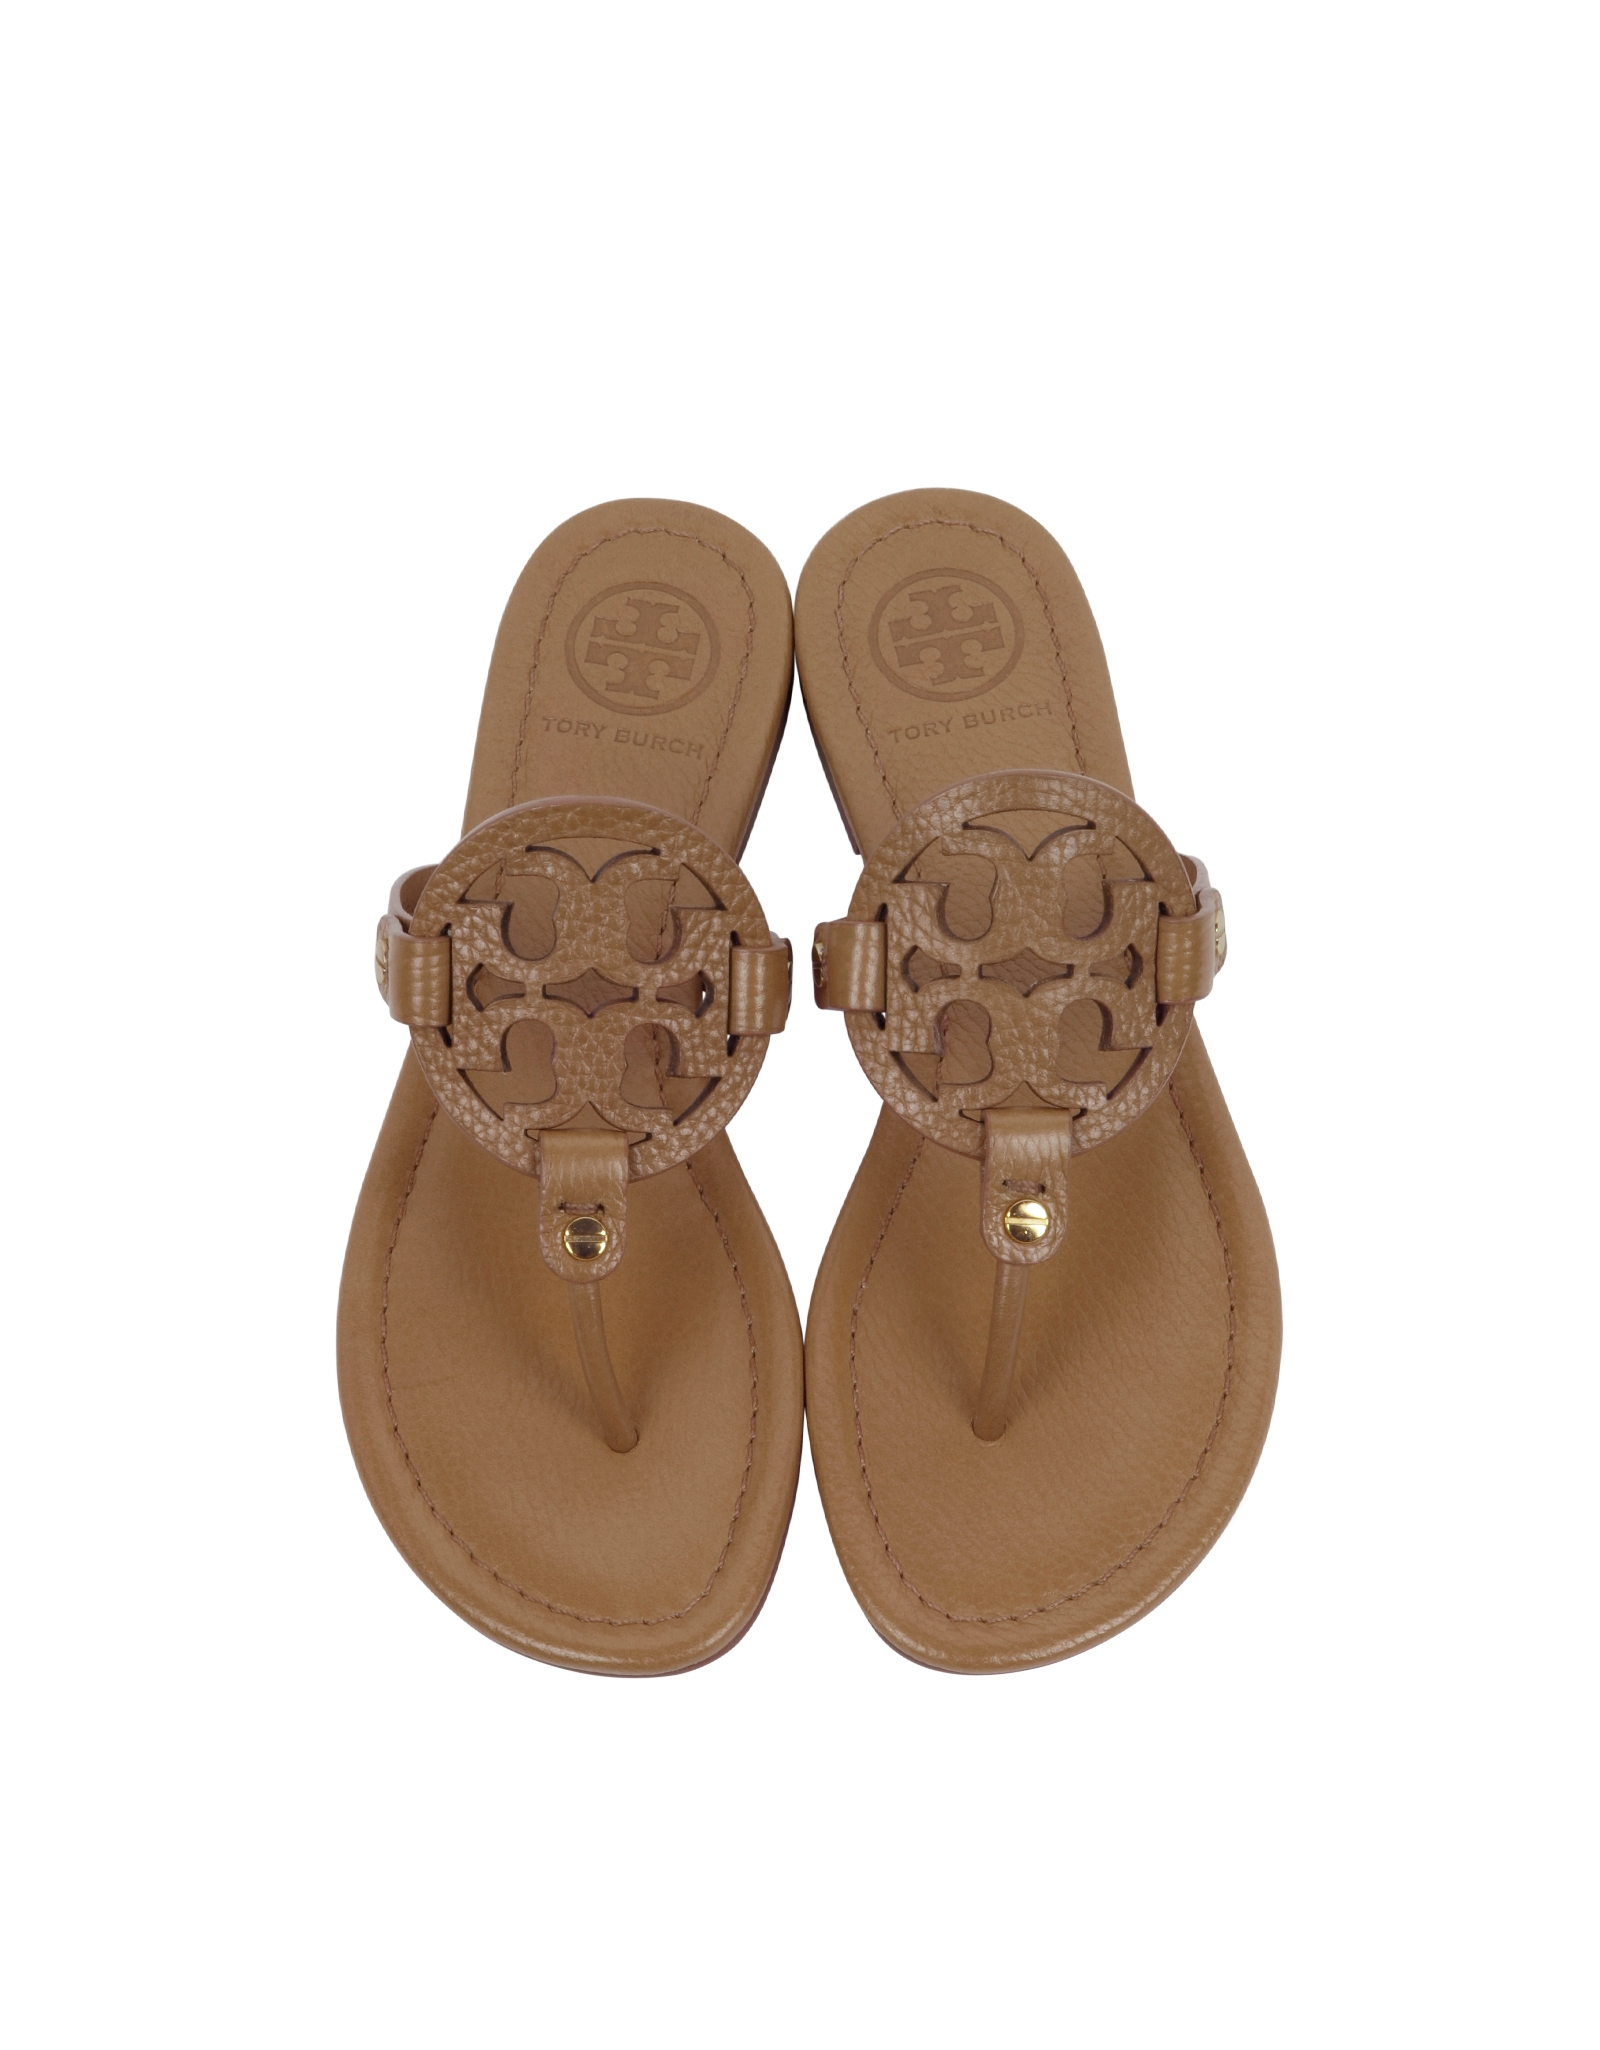 f72c14ee66bfc9 Tory Burch Miller Royal Tan Leather Sandal in Brown - Lyst